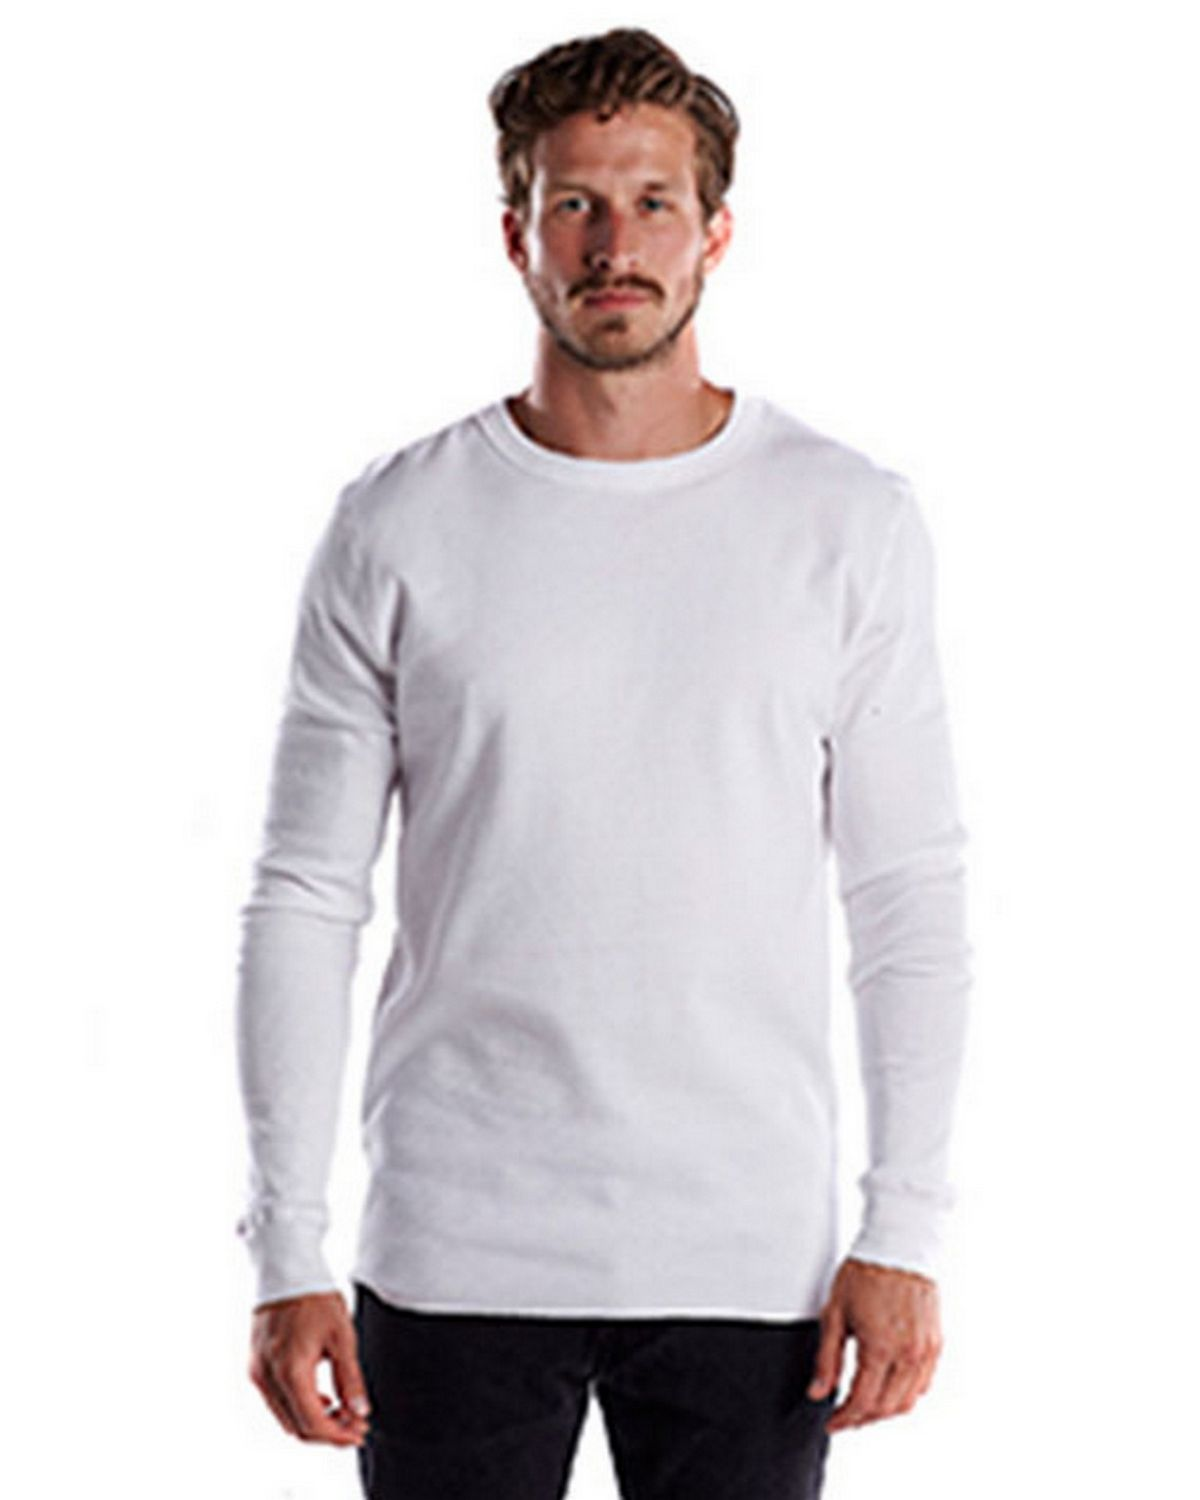 US Blanks US2900 Mens 5.8 oz. Long-Sleeve Thermal Crewneck